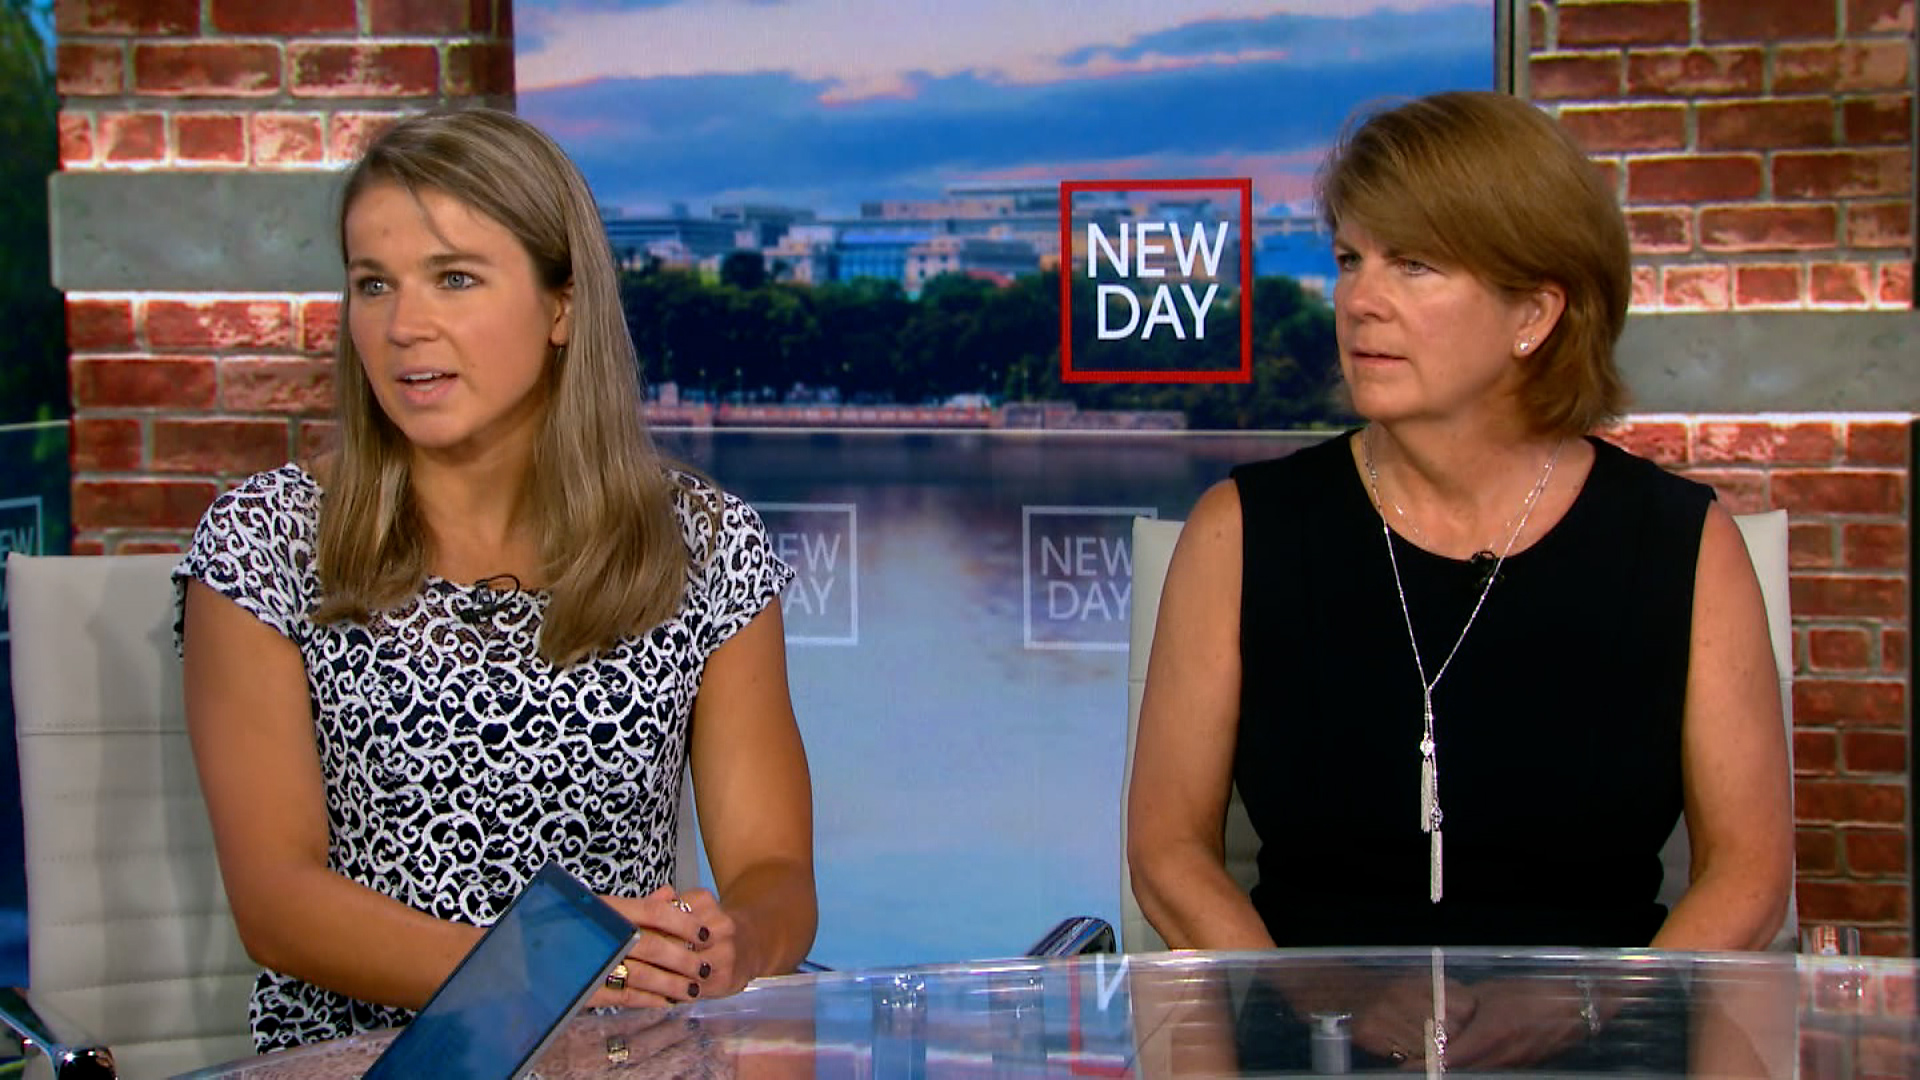 Becca Meyers, left, and her mother, Maria, are interviewed on New Day on July 21.